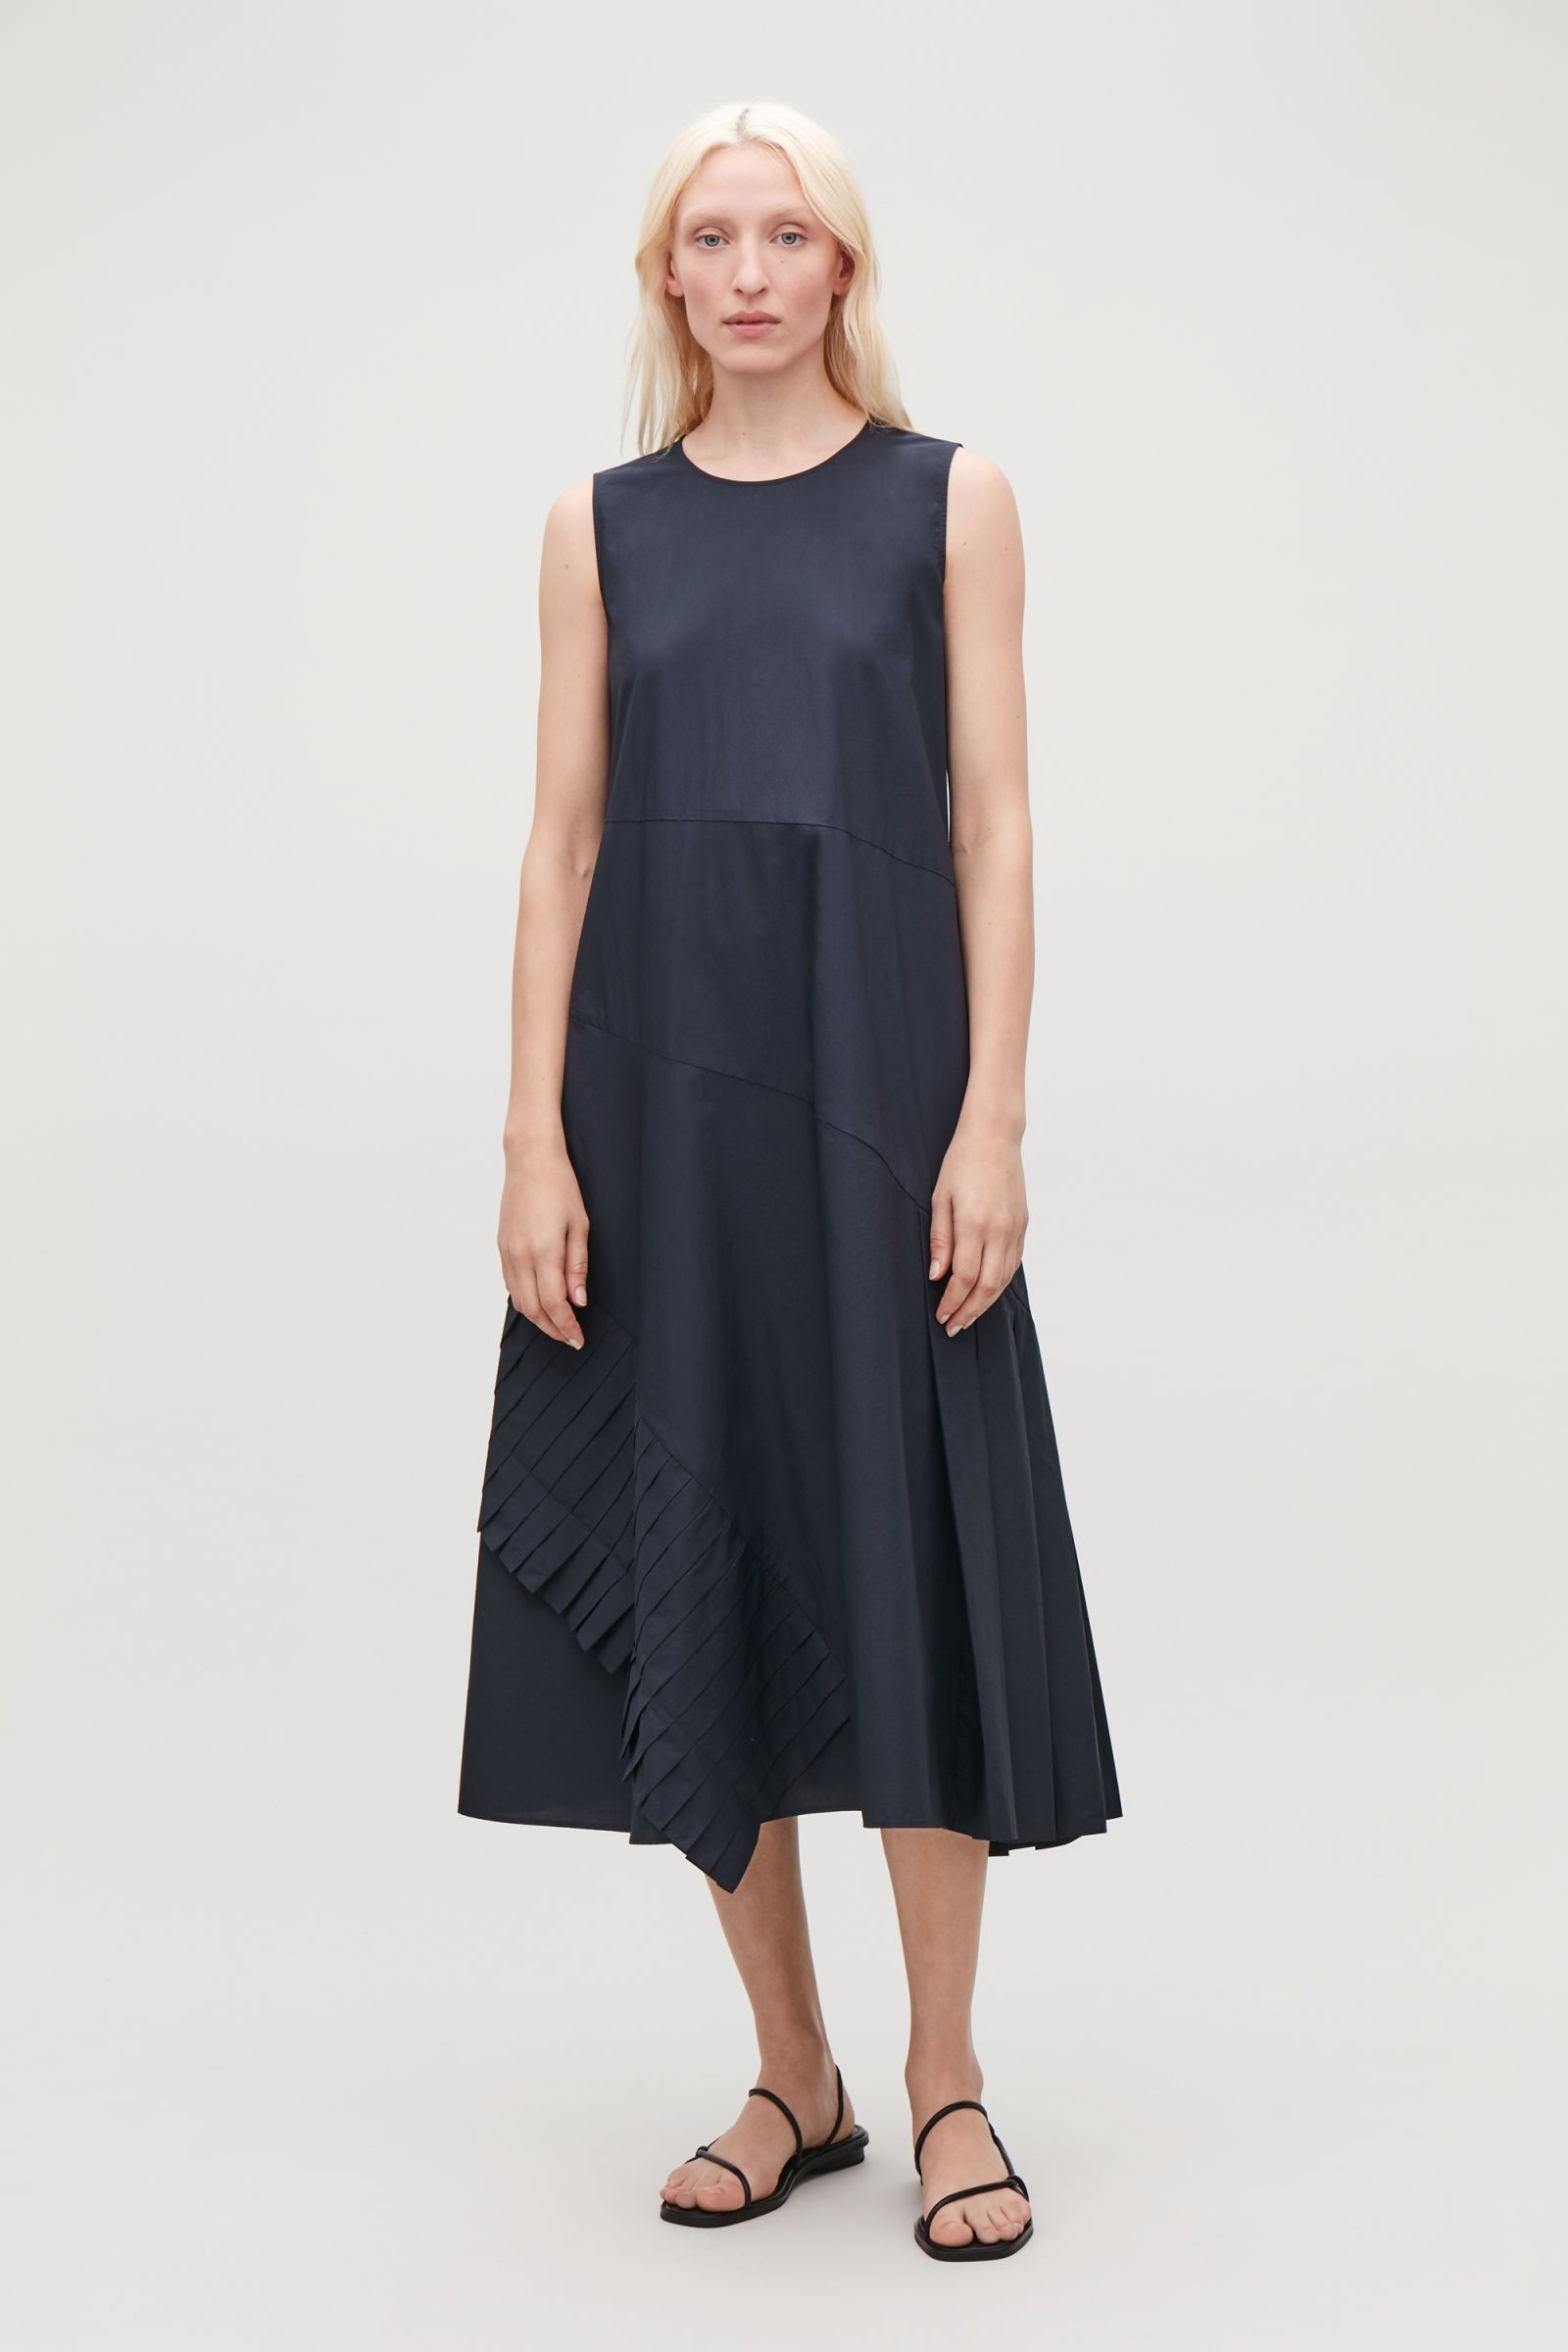 029e20dbe8db A-LINE DRESS WITH PLEATED DRAPE - Navy - Dresses - COS | Cos in 2019 ...